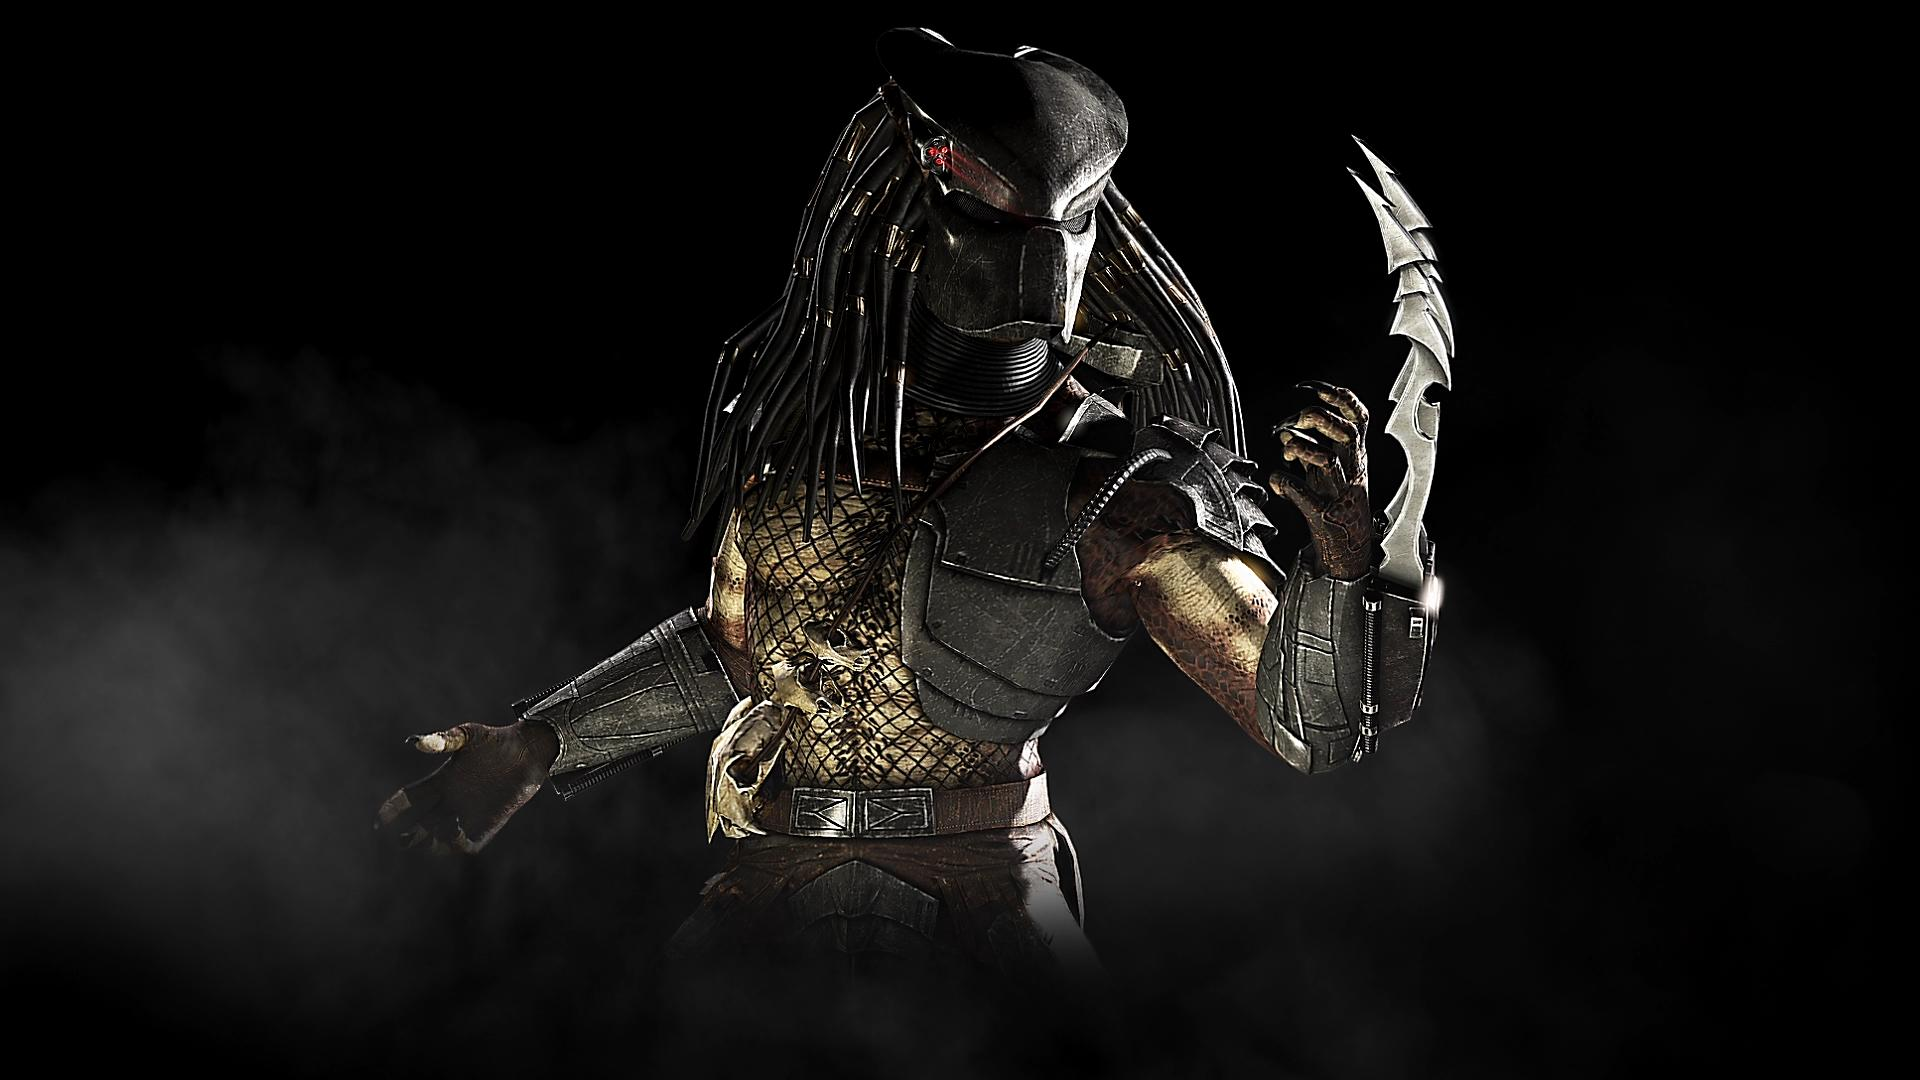 Predator 4k Wallpapers For Your Desktop Or Mobile Screen Free And Easy To Download